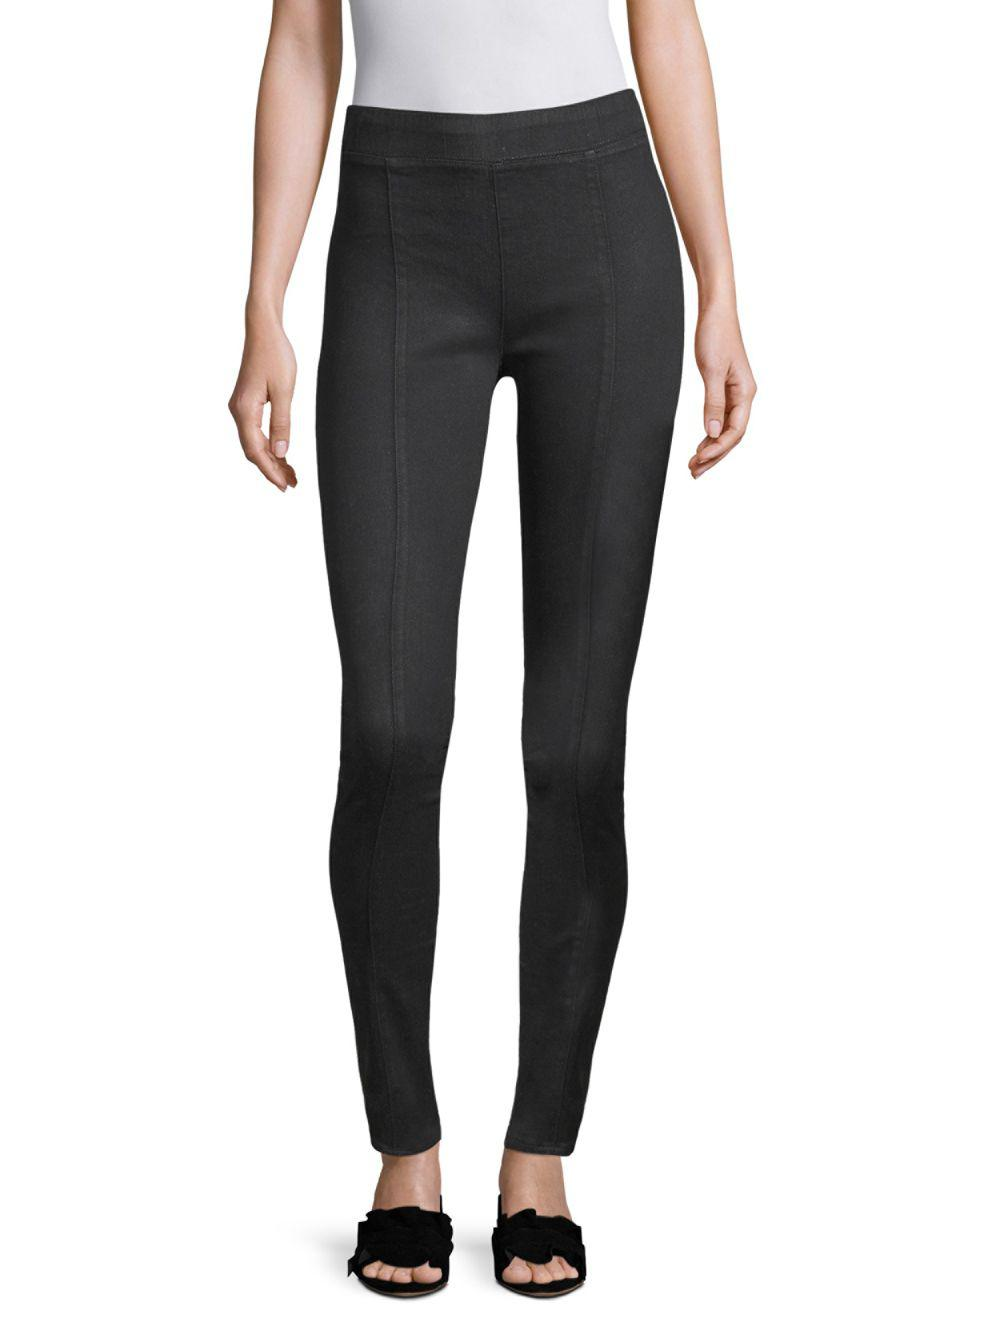 868959d9f0bd04 Lyst - Helmut Lang Seamed Coated Leggings in Black - Save 43%